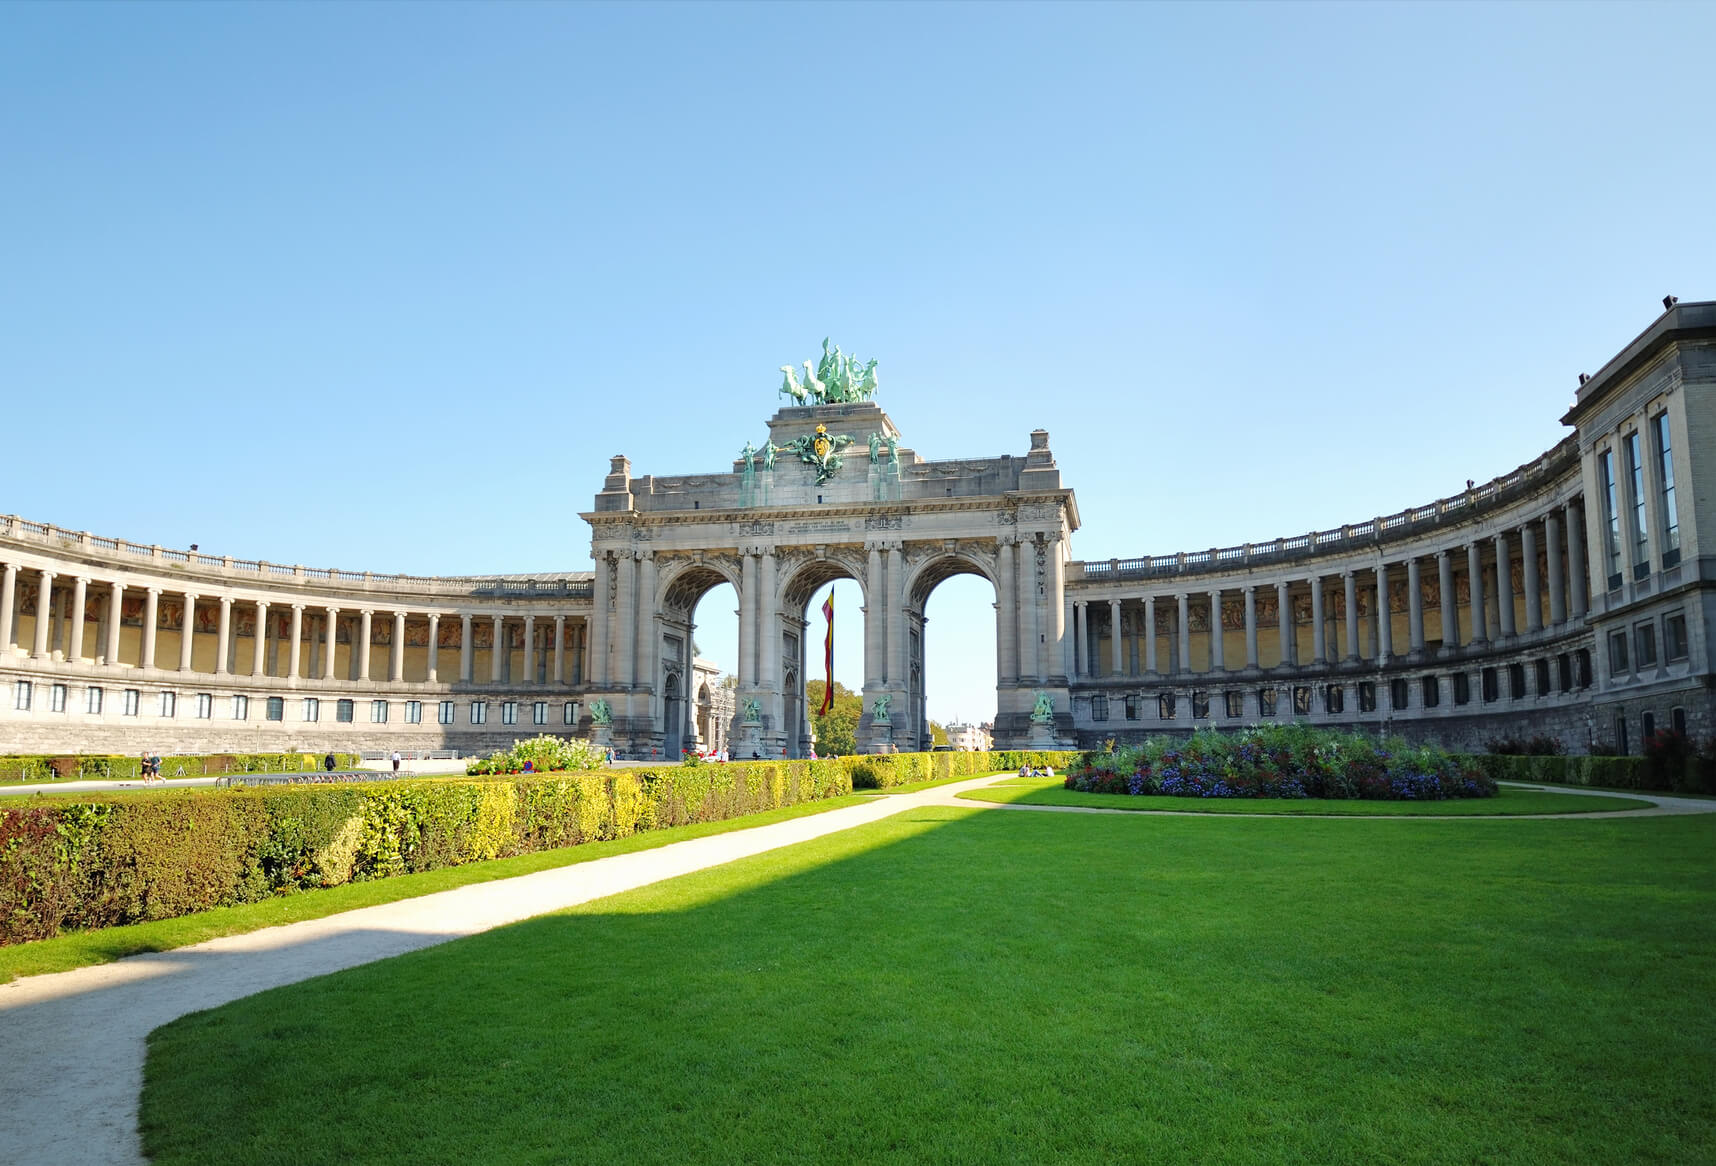 Dallas, Texas to Brussels, Belgium for only $342 roundtrip